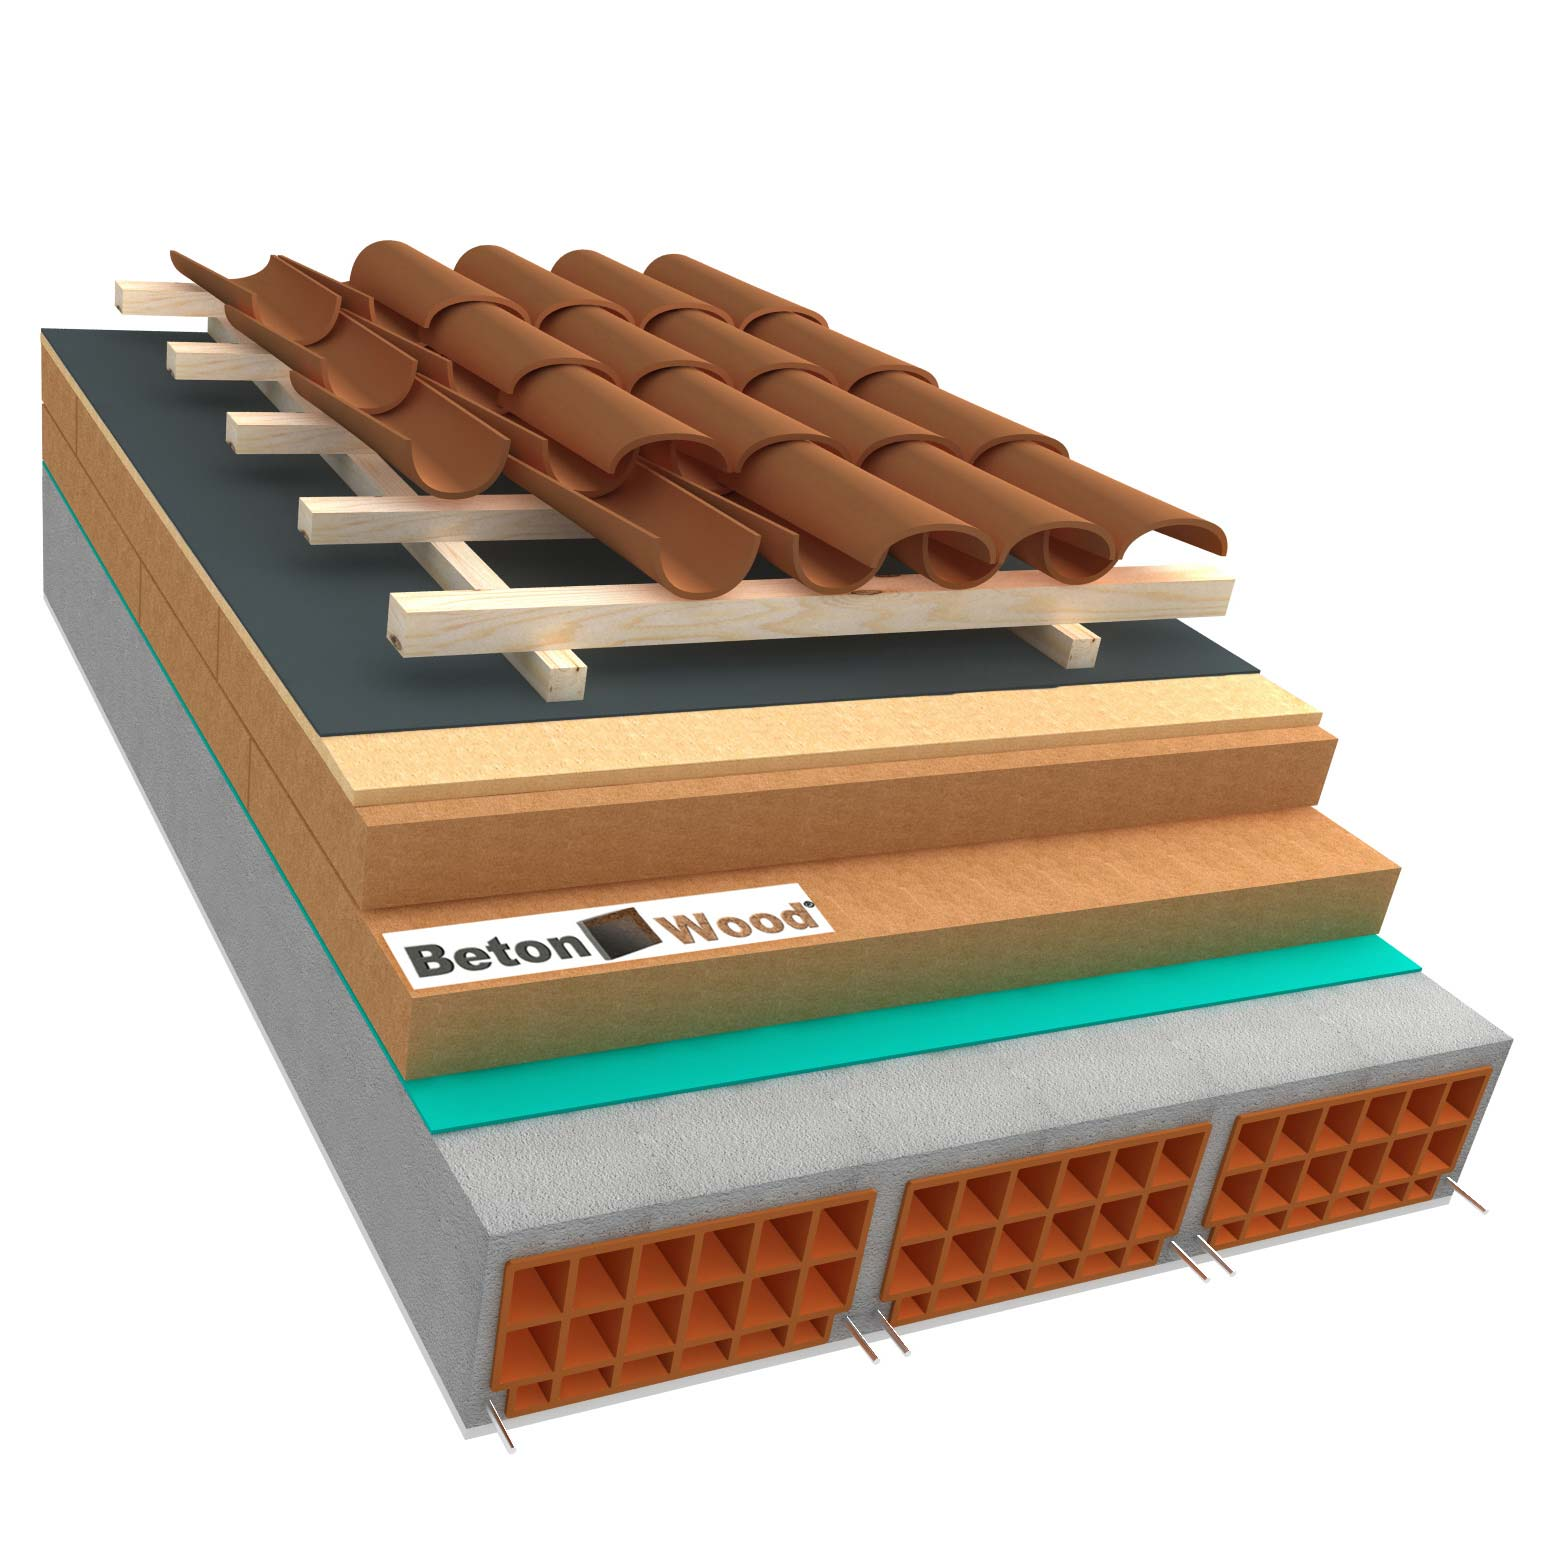 Ventilated roof with wood fiber Isorel and Therm on concrete